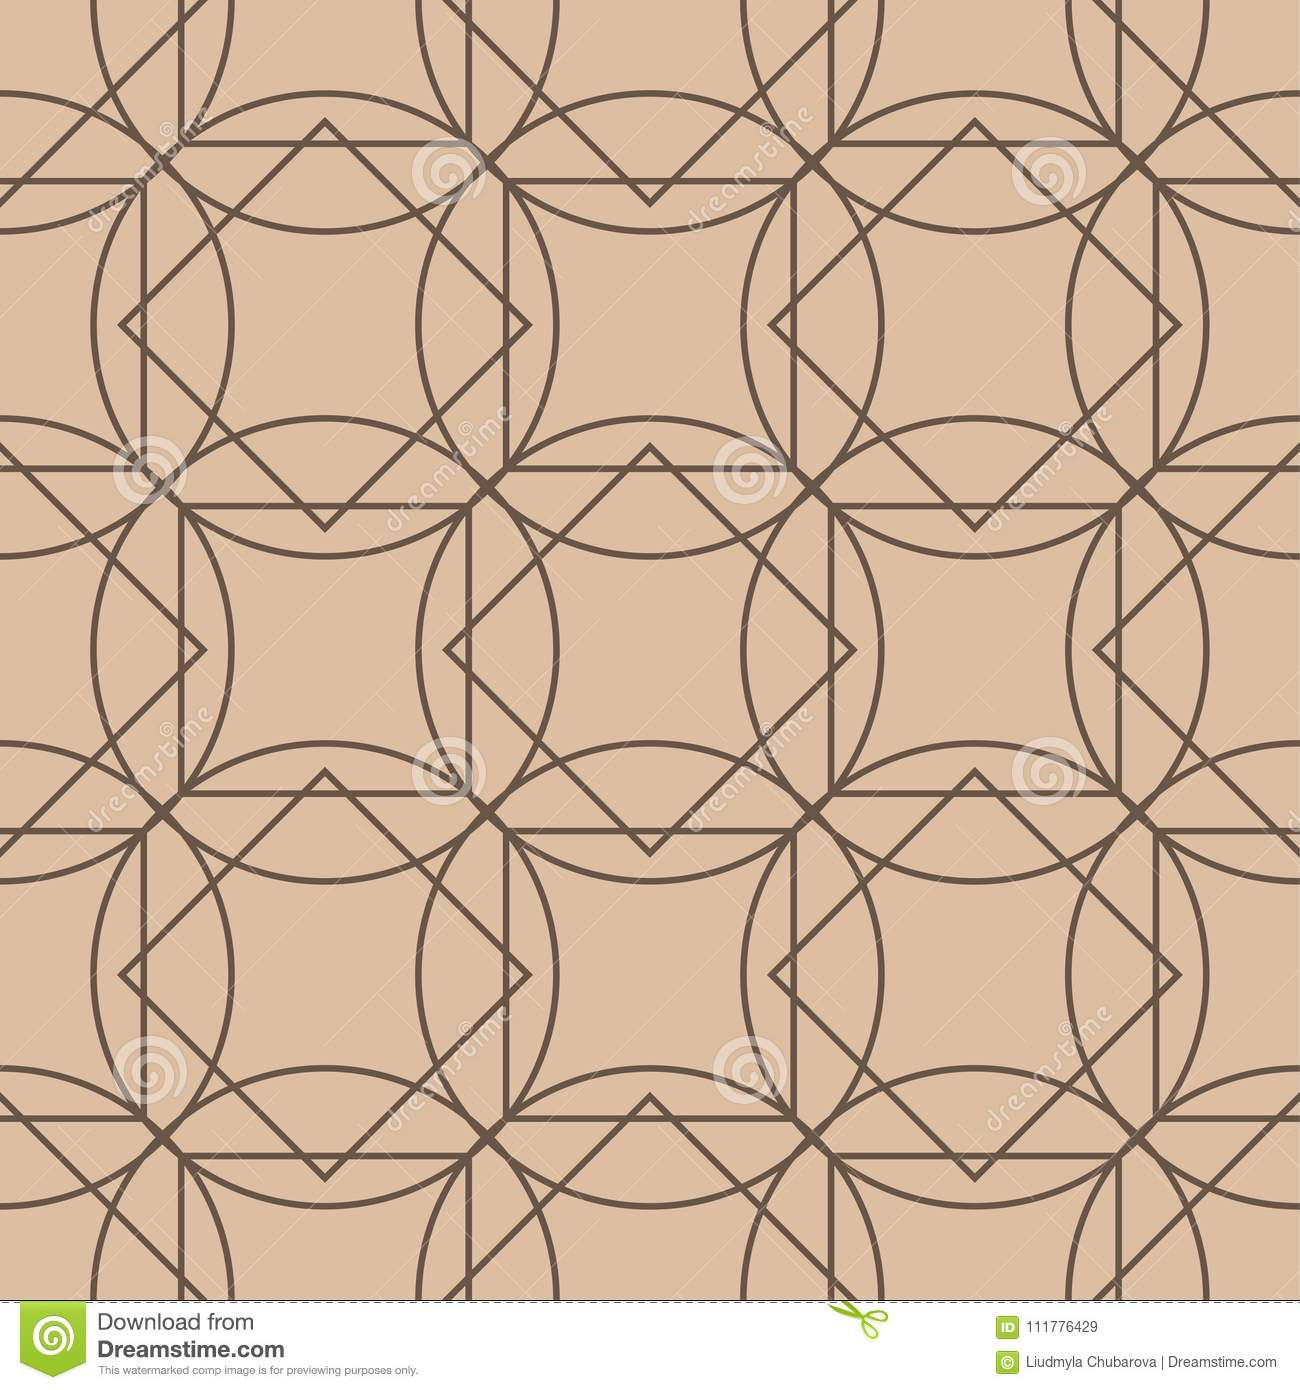 Beige and brown geometric ornament. Seamless pattern